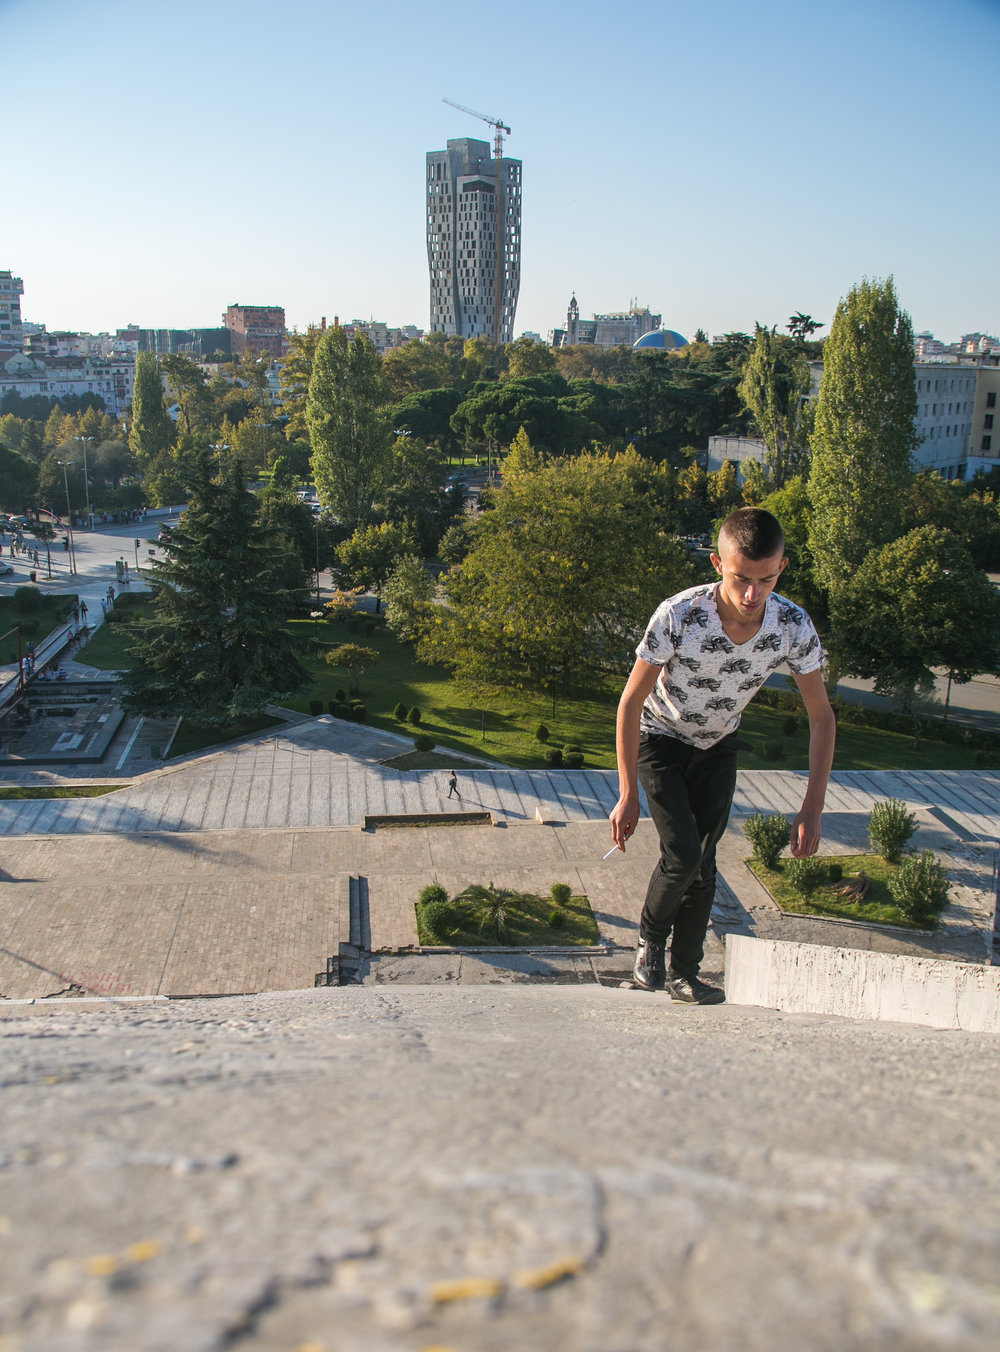 An Albanian boy climbs the Pyramid of Tirana. The city does not discourage climbers from hanging out on or atop the abandoned monument.